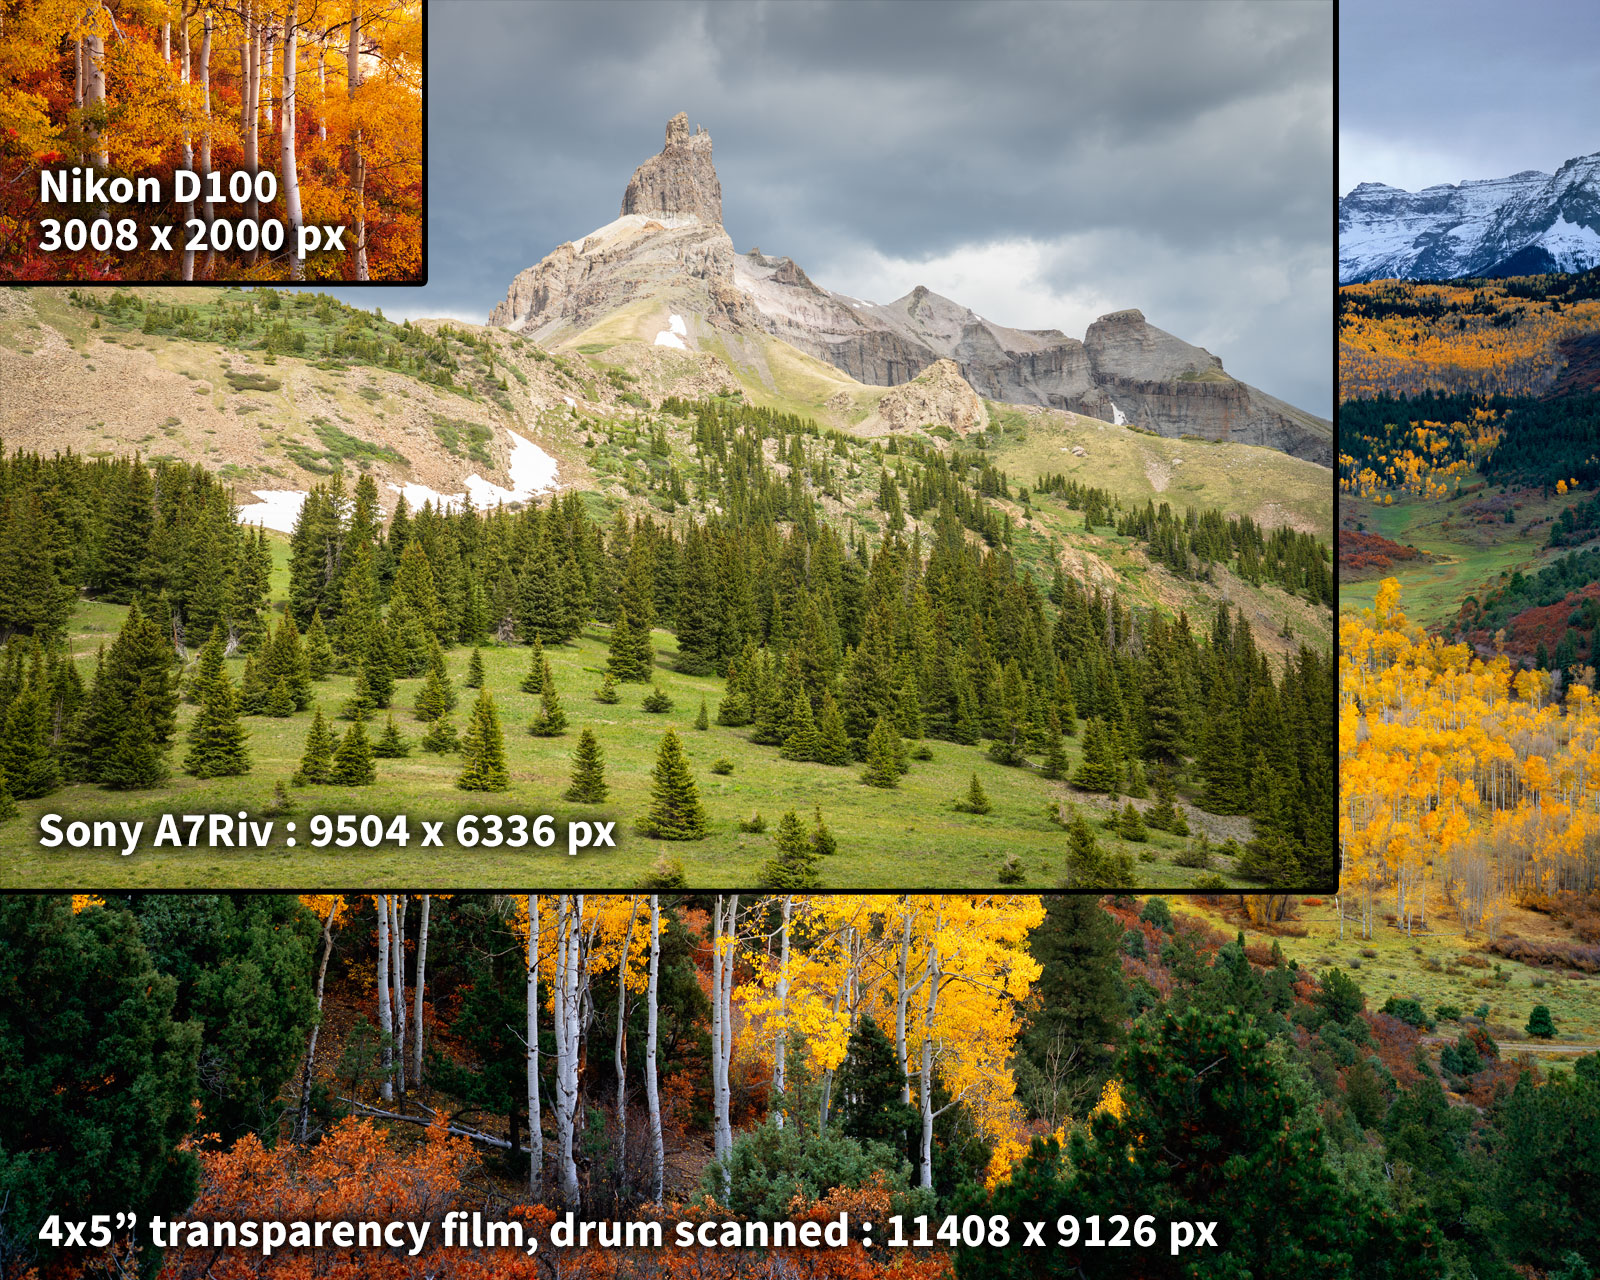 A comparison of the native pixel resolution of Nikon D100 (6mp), Sony A7Riv (61mp), and 4x5